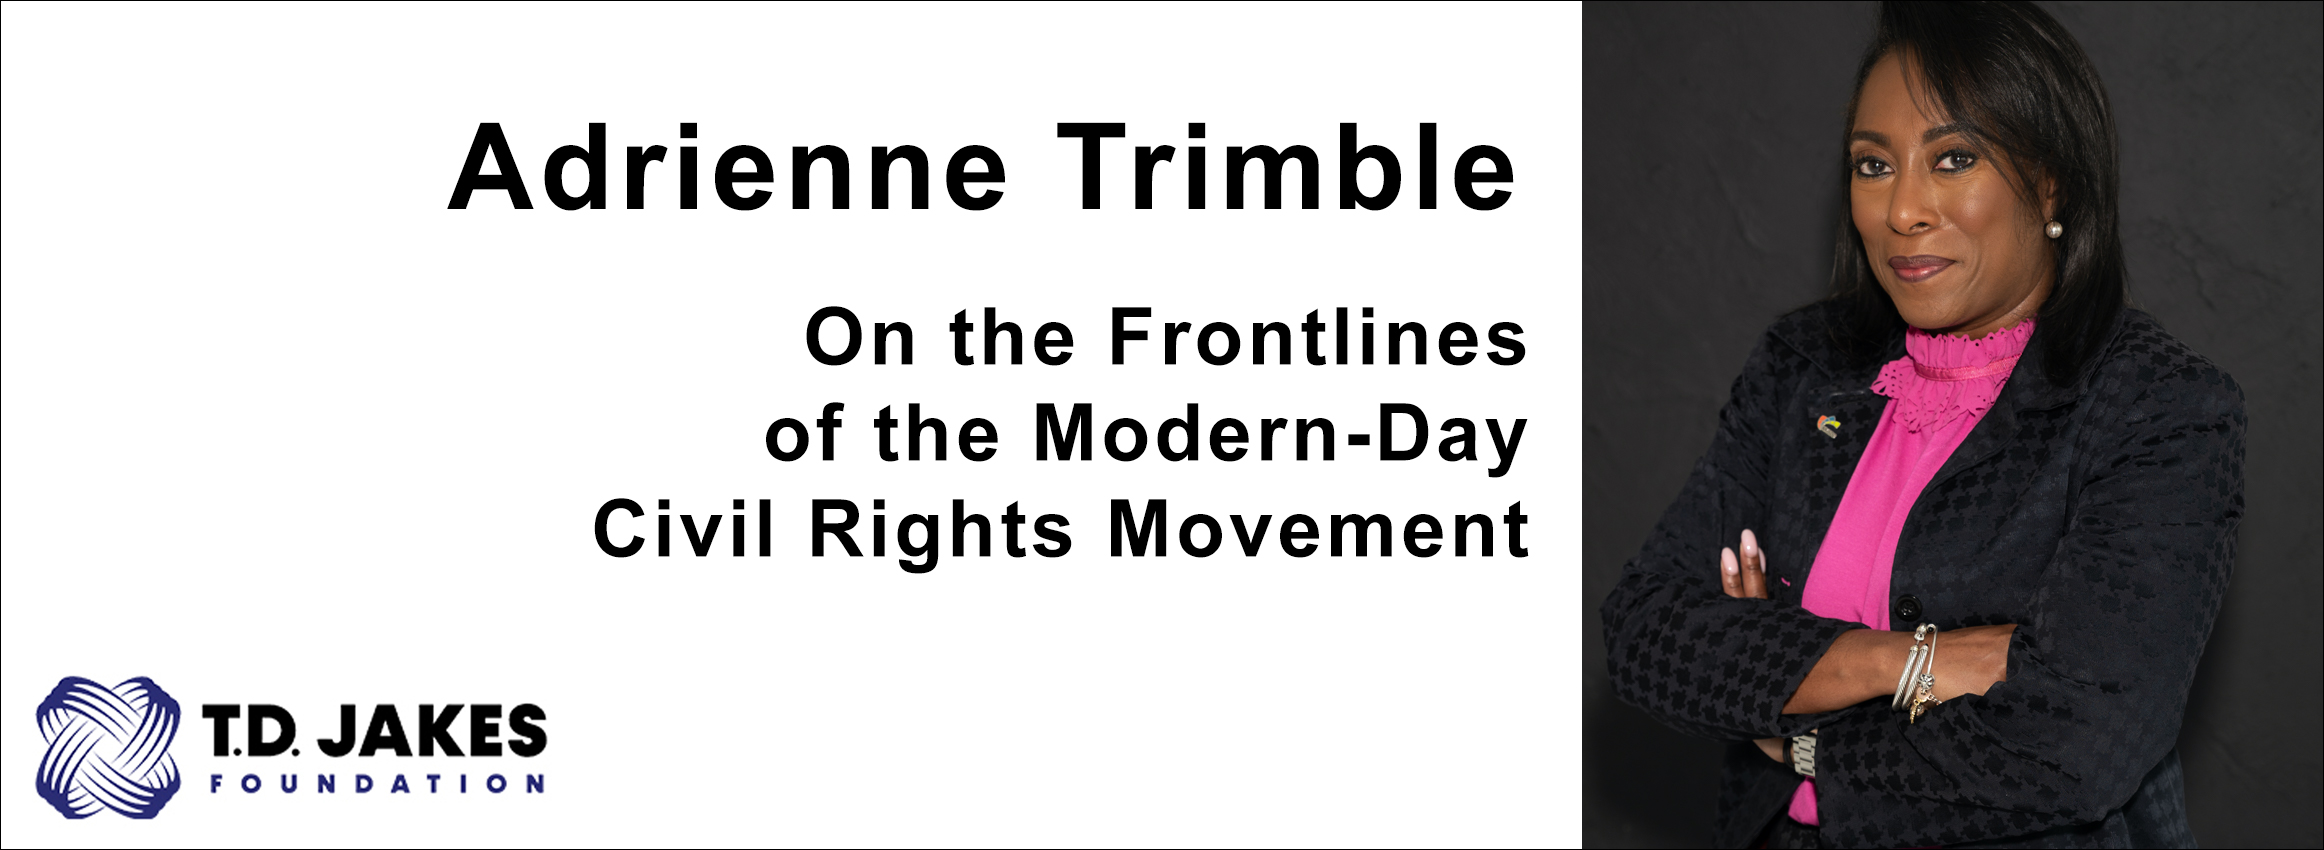 Adrienne Trimble is on the Frontlines of the Modern-Day Civil Rights Movement